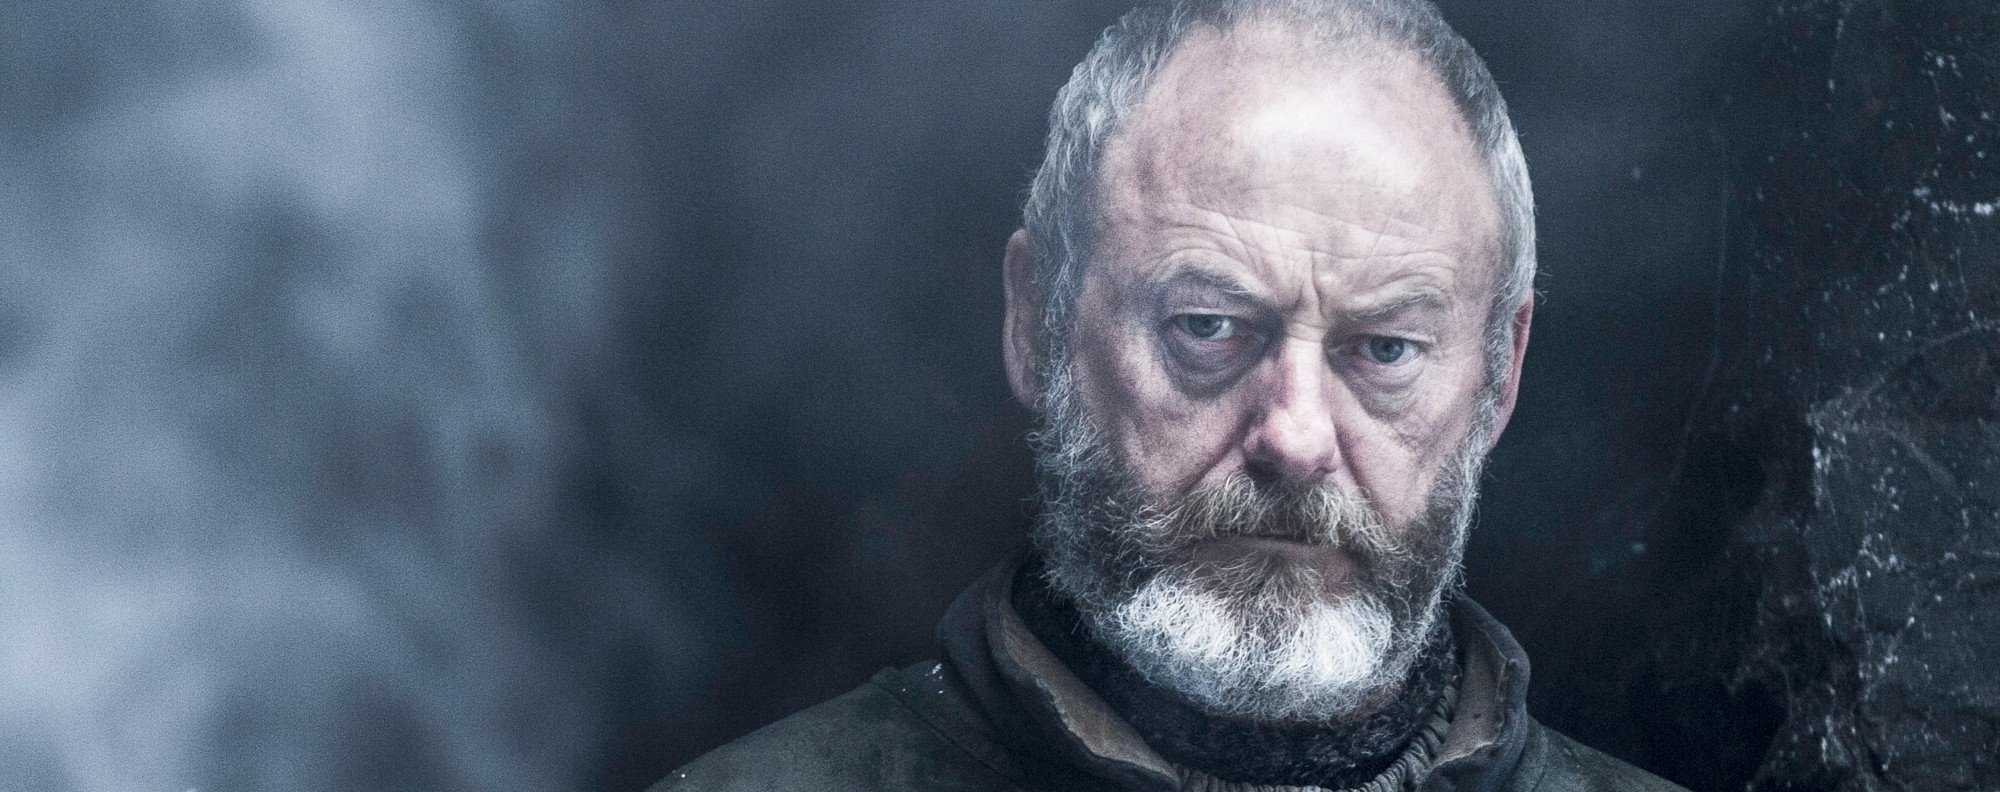 Liam Cunningham as Davos Seaworth in Game of Thrones.